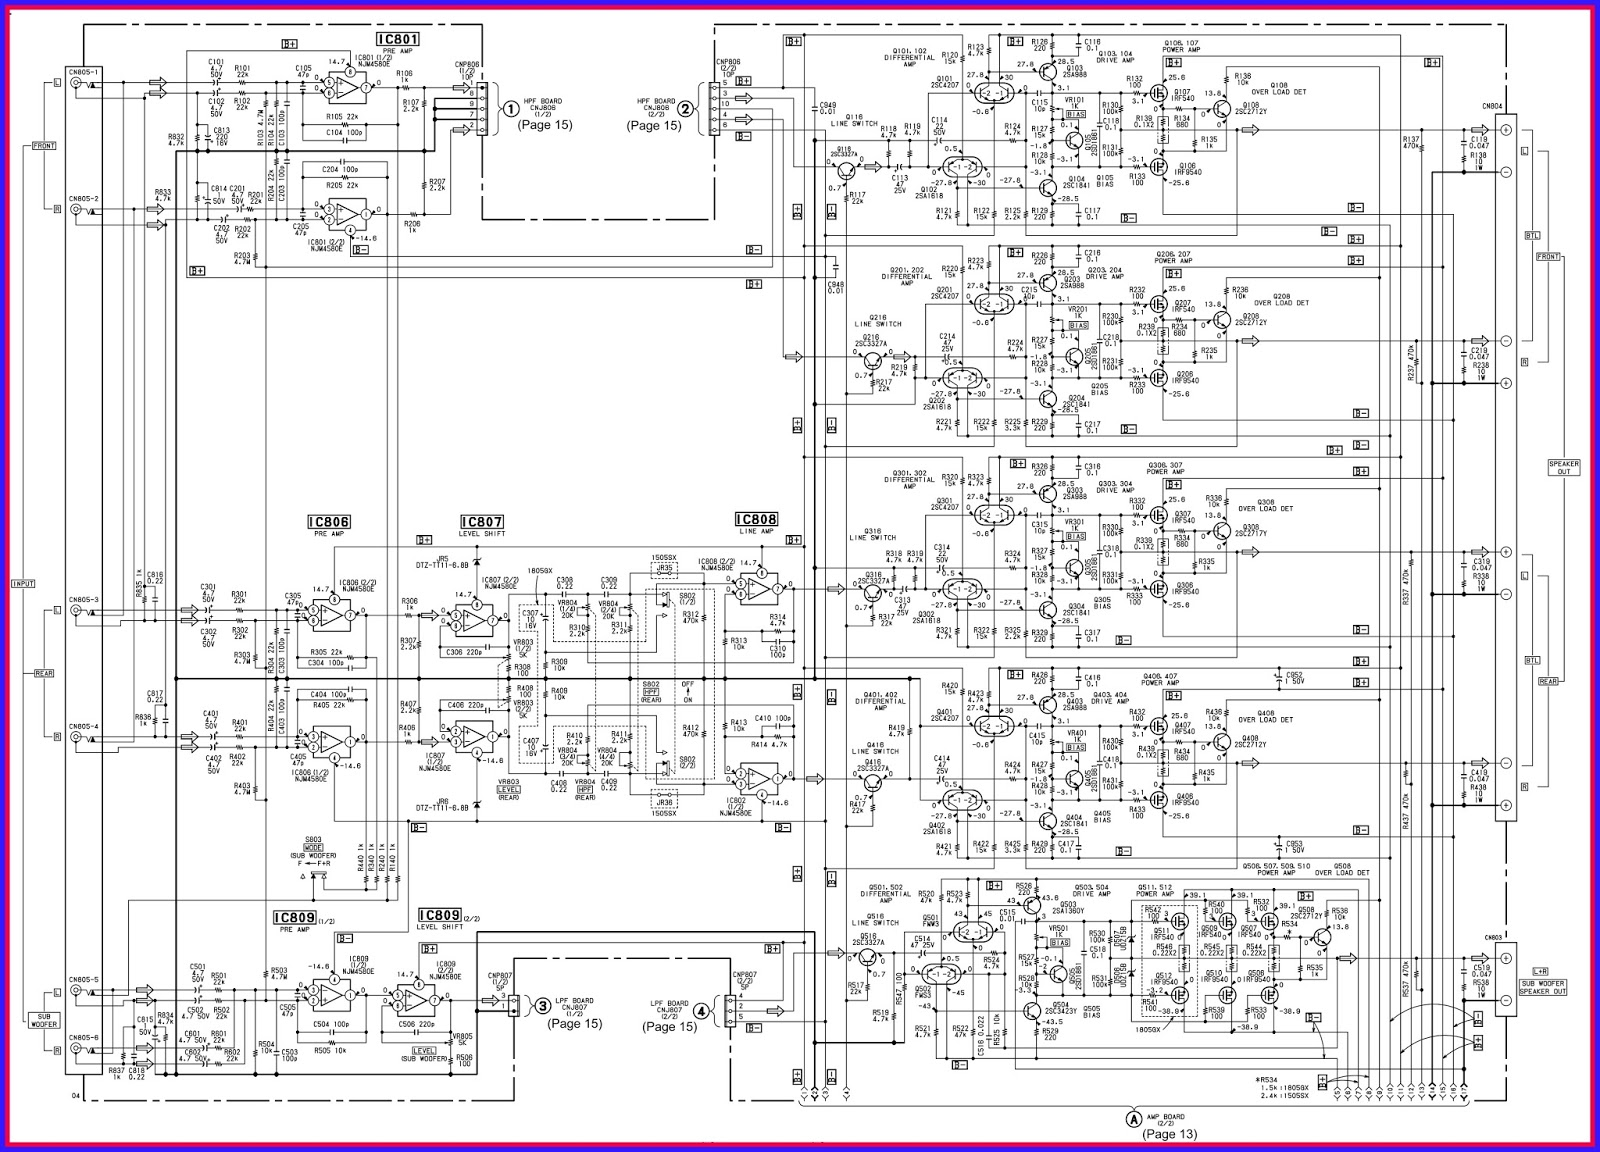 Sony Car Amplifier Circuit Diagram Index 20 Sensor Seekiccom Electronic Equipment Repair Centre Xm 1505sx